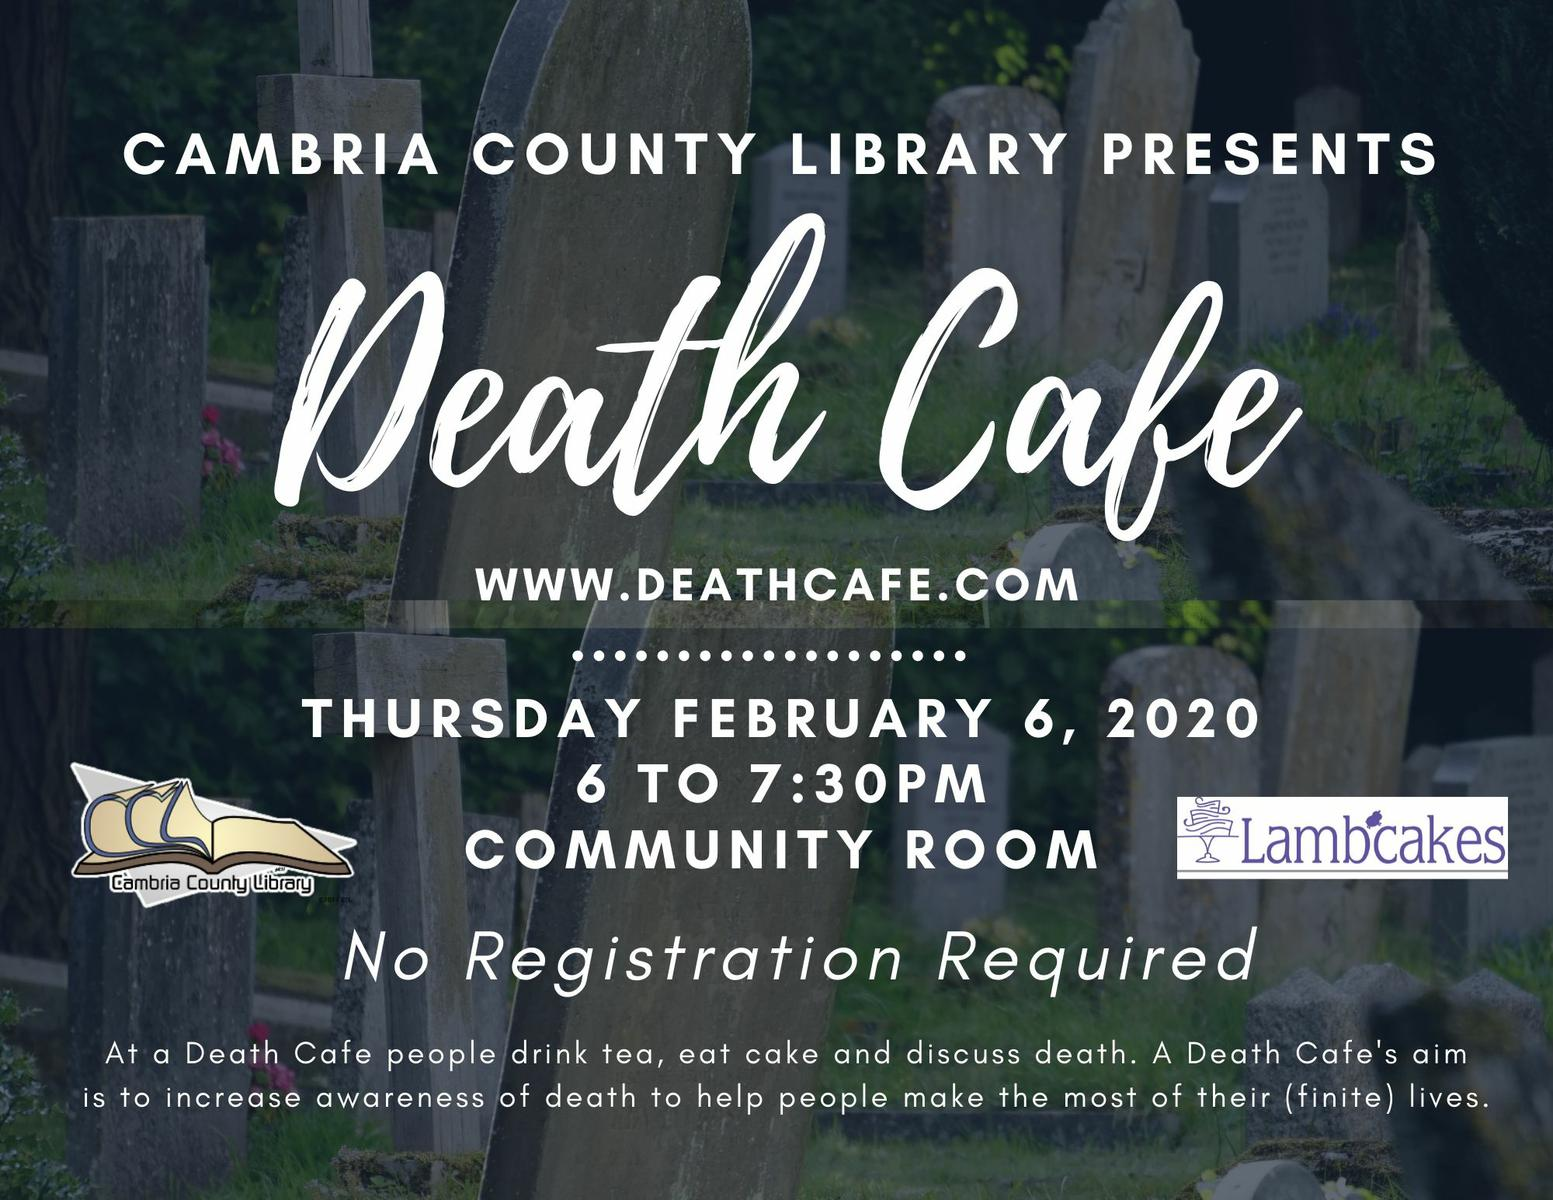 Johnstown Death Cafe